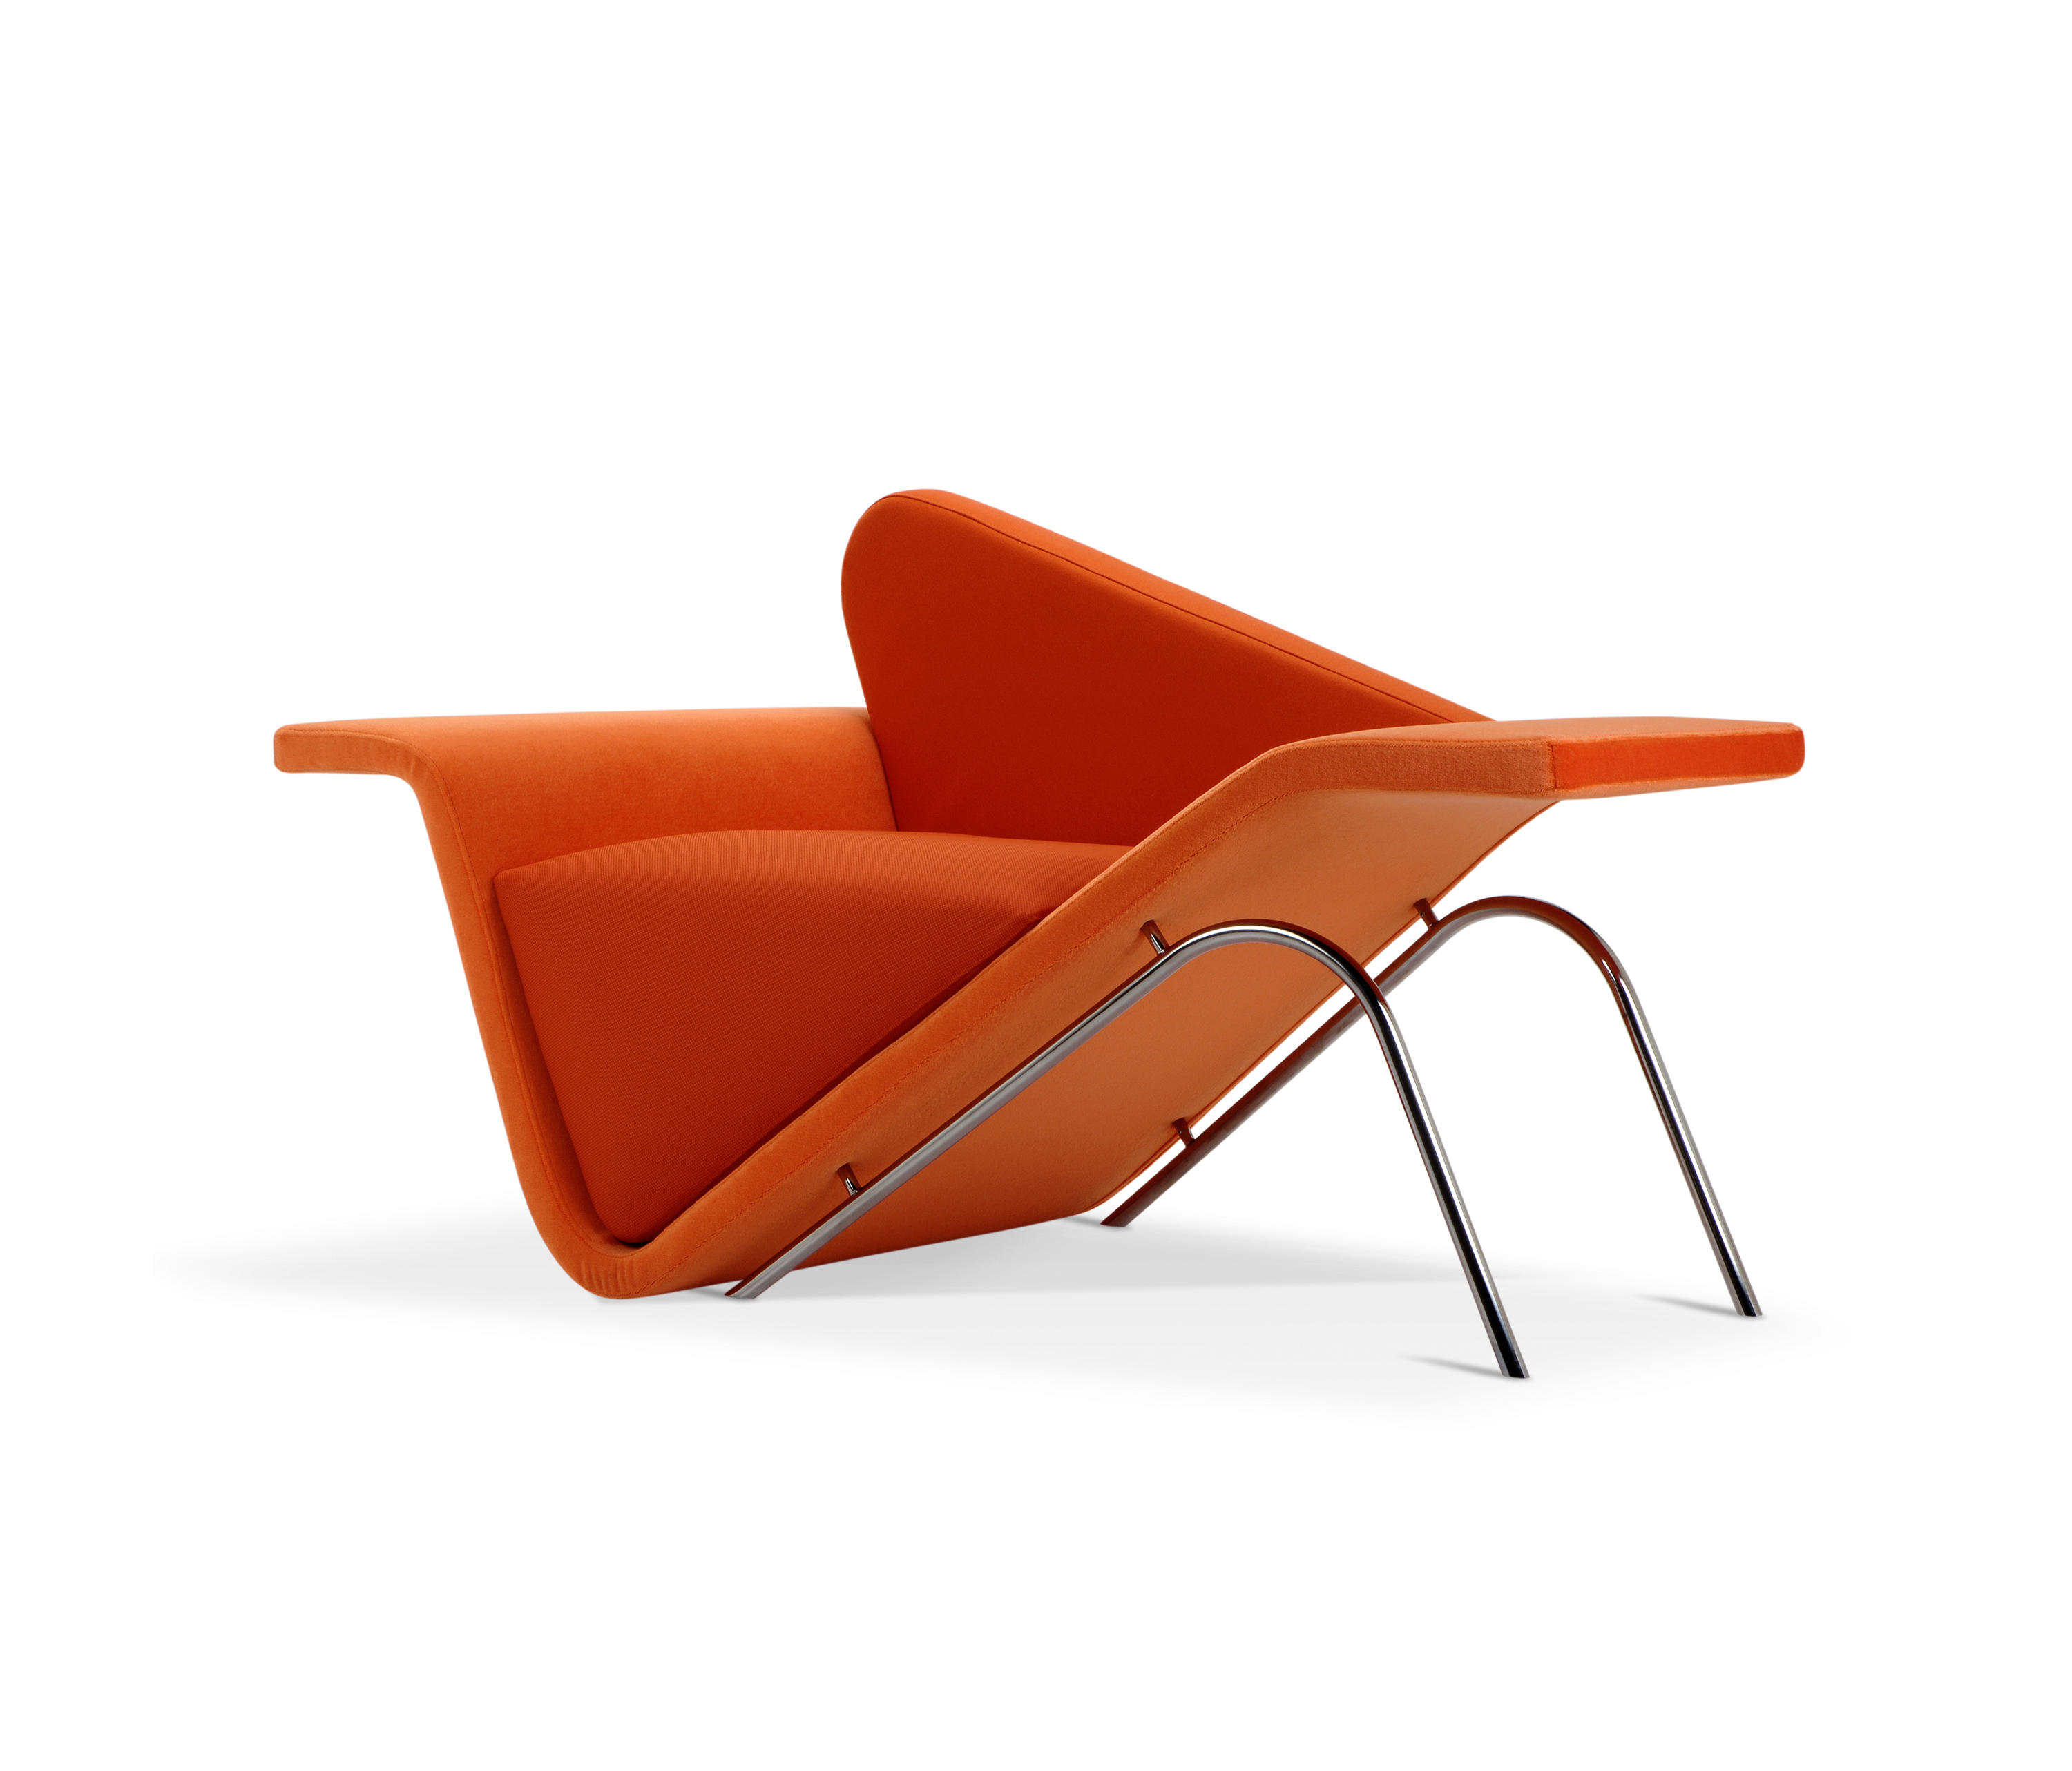 V2 Seating Collection by Adrenalina